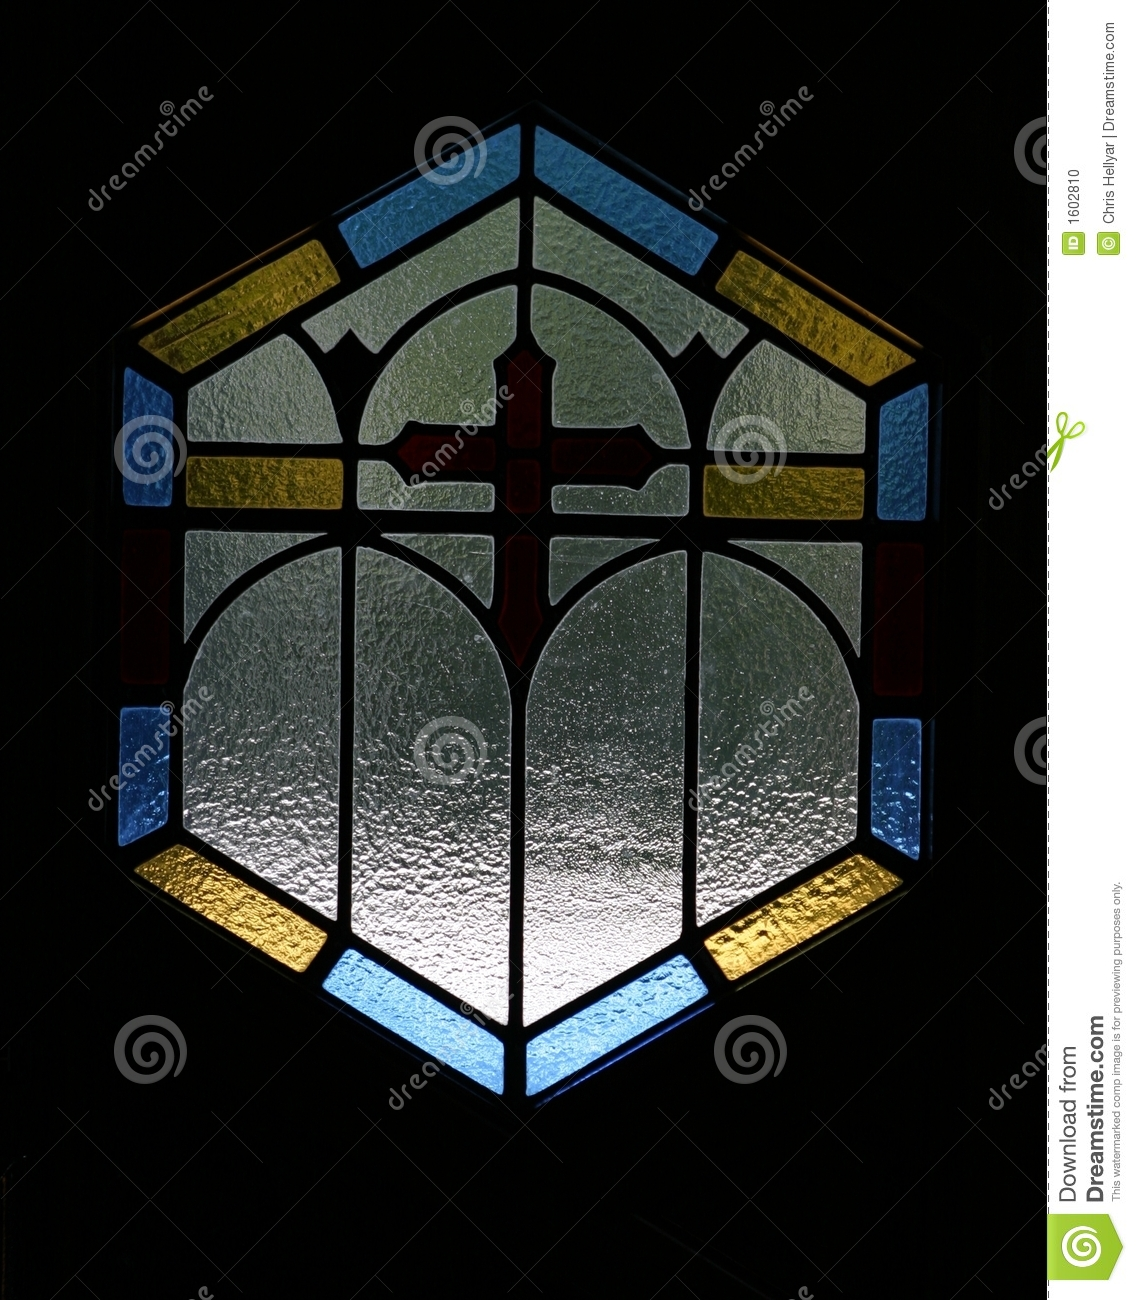 Simple Stained Glass Window